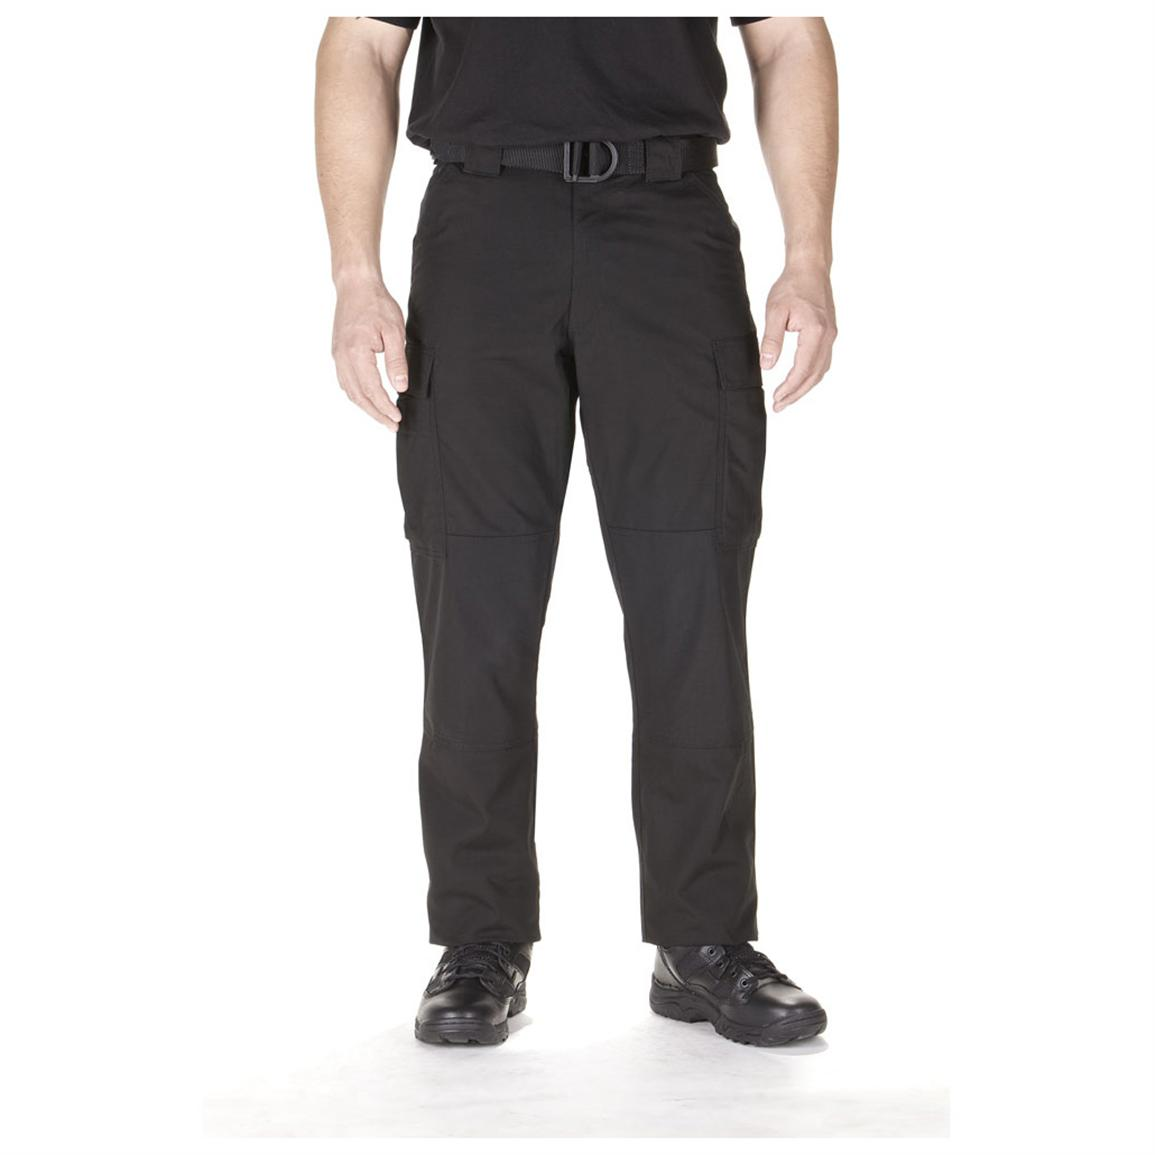 Men's 5.11 Tactical® Twill TDU® Pants, Black